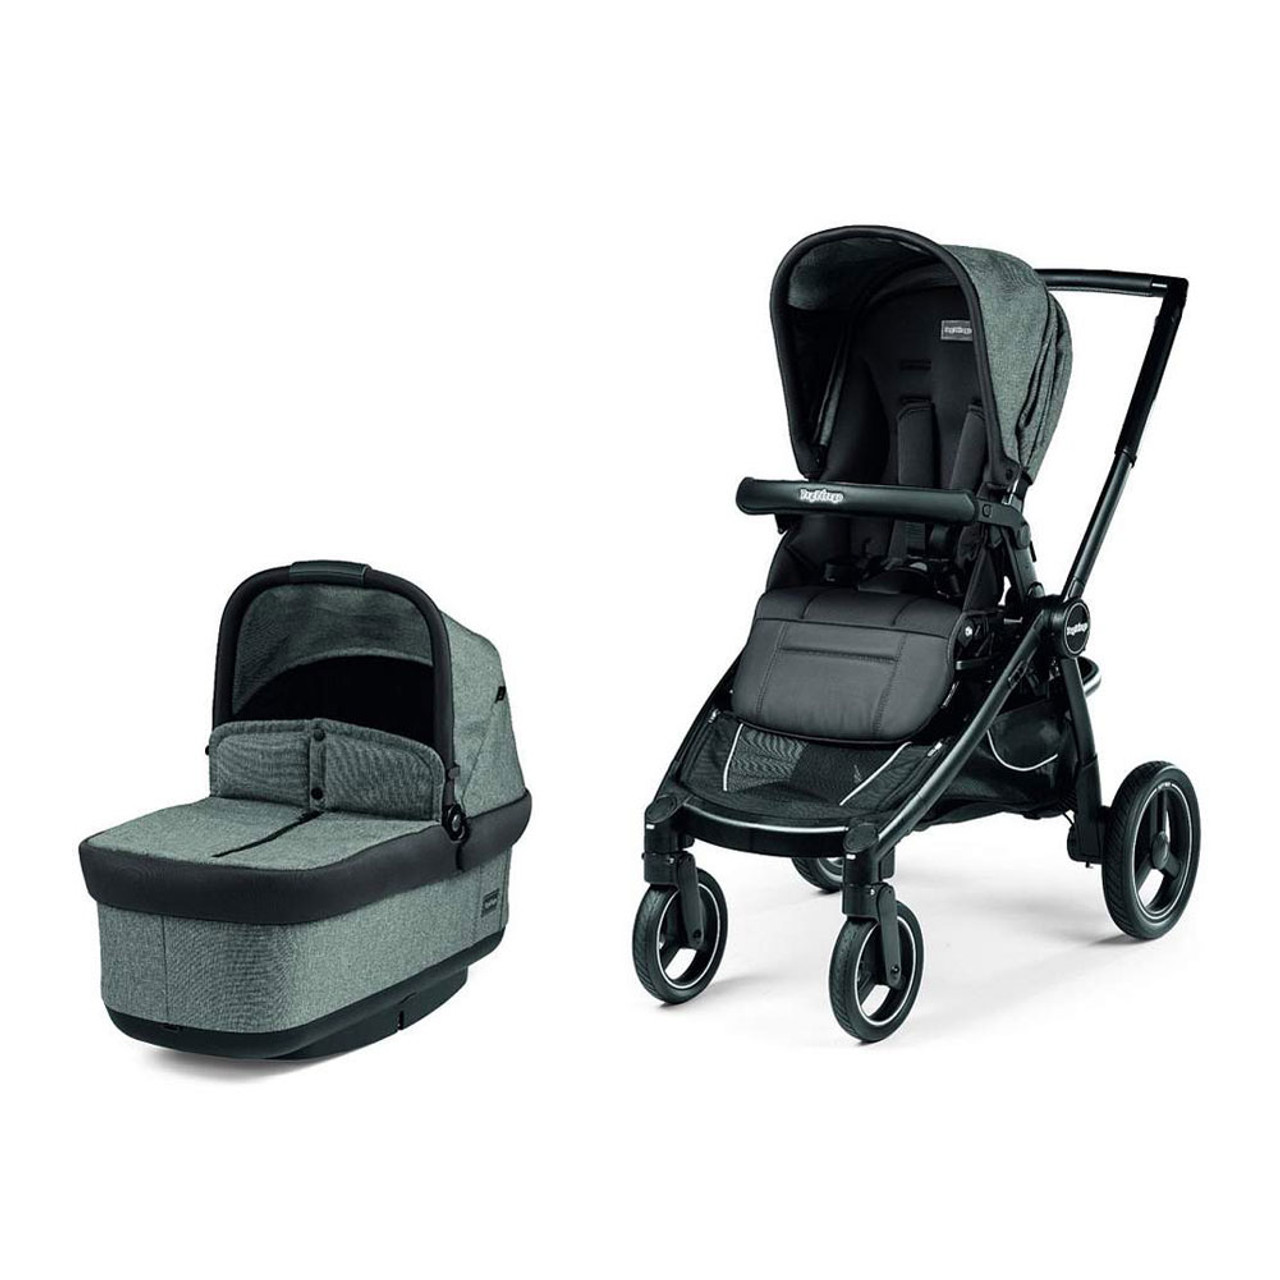 Peg Perego Stroller For Twins Peg Perego Team Stroller Atmosphere